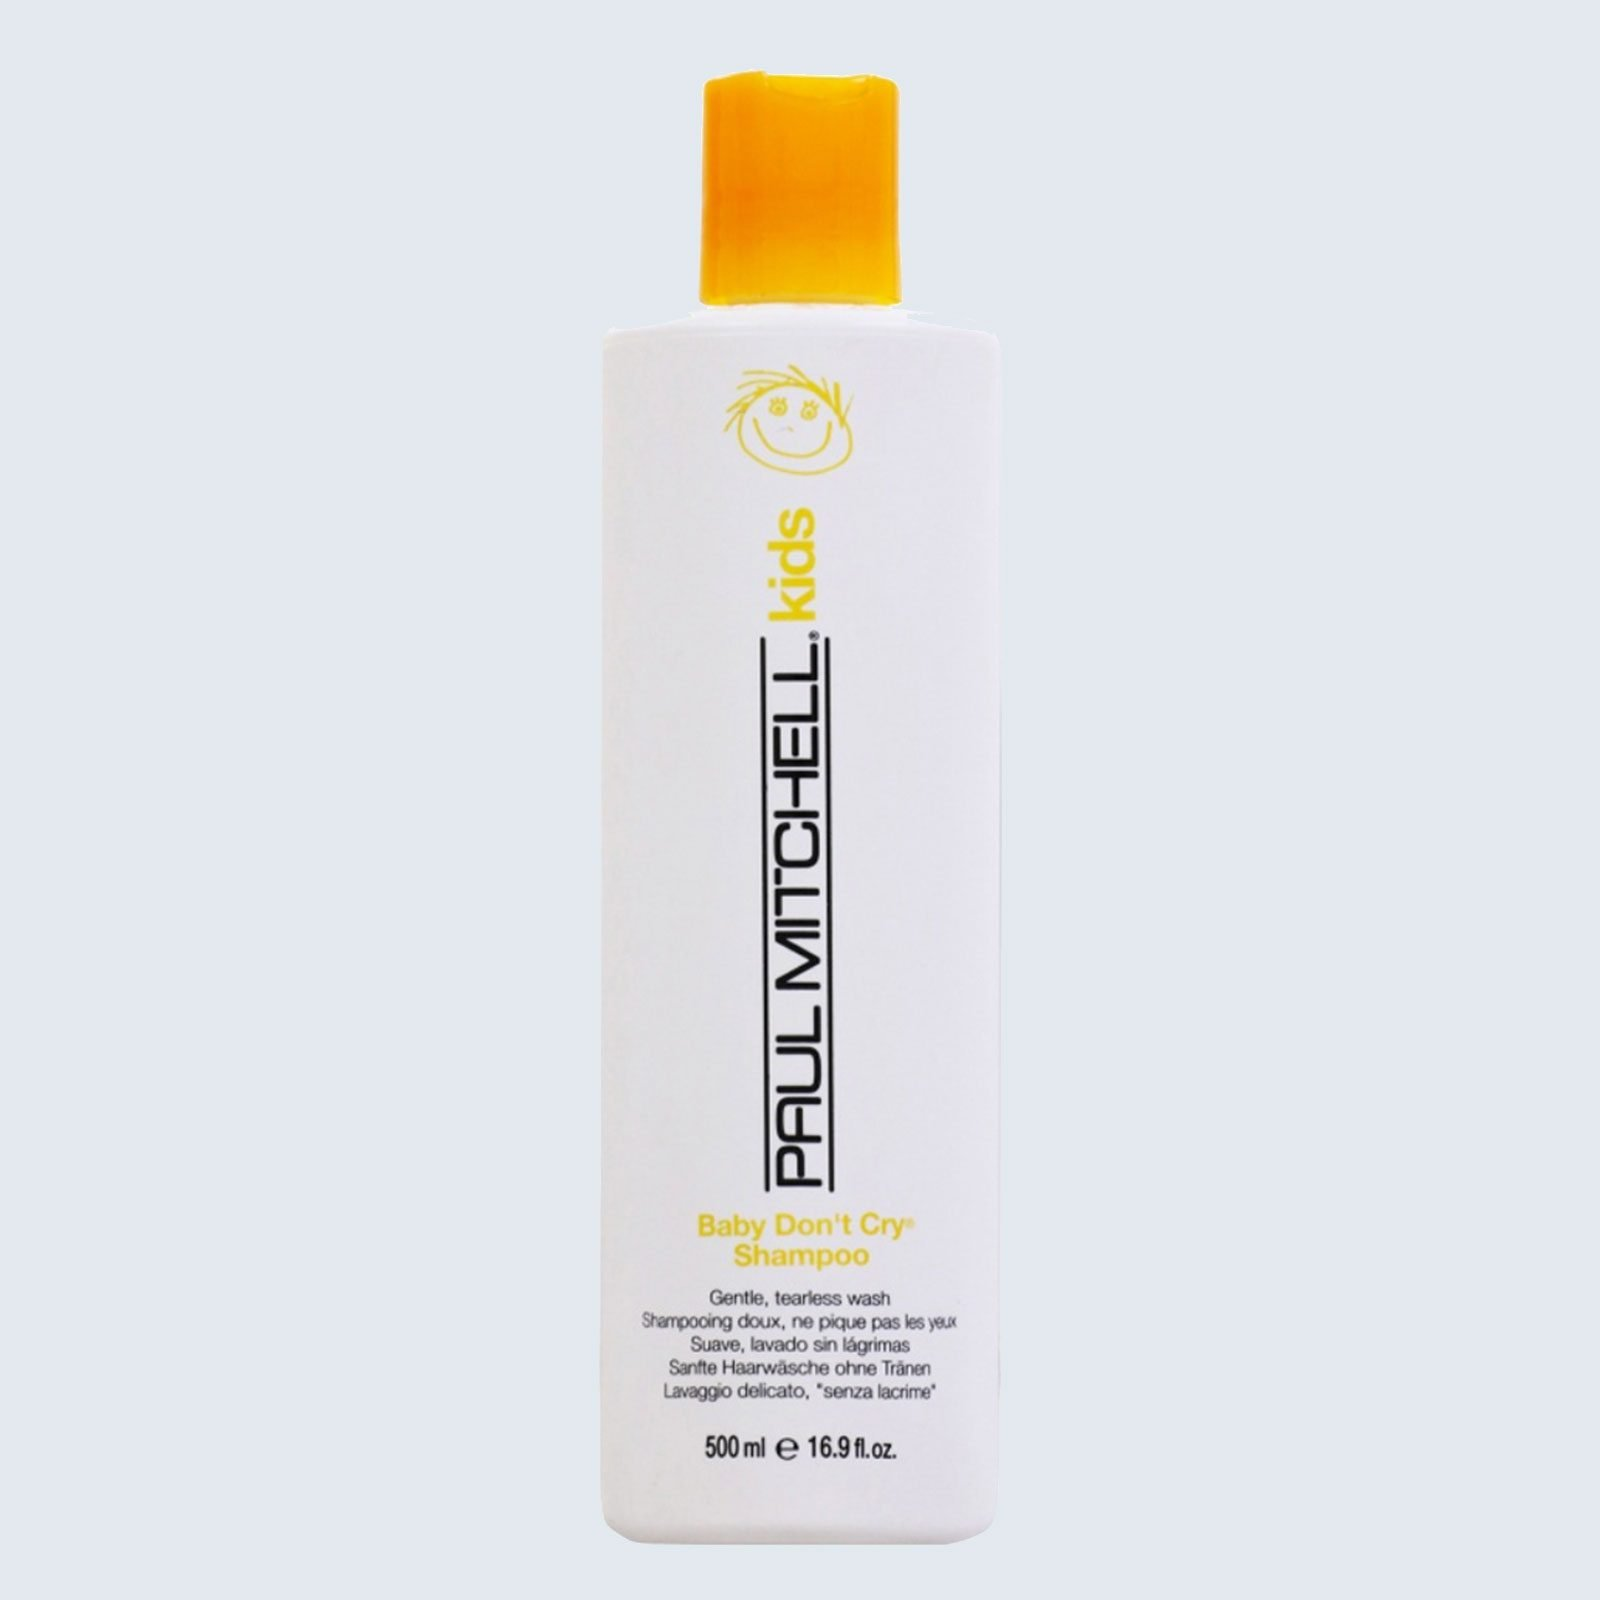 Best gentle shampoo: Paul Mitchell Baby Don't Cry